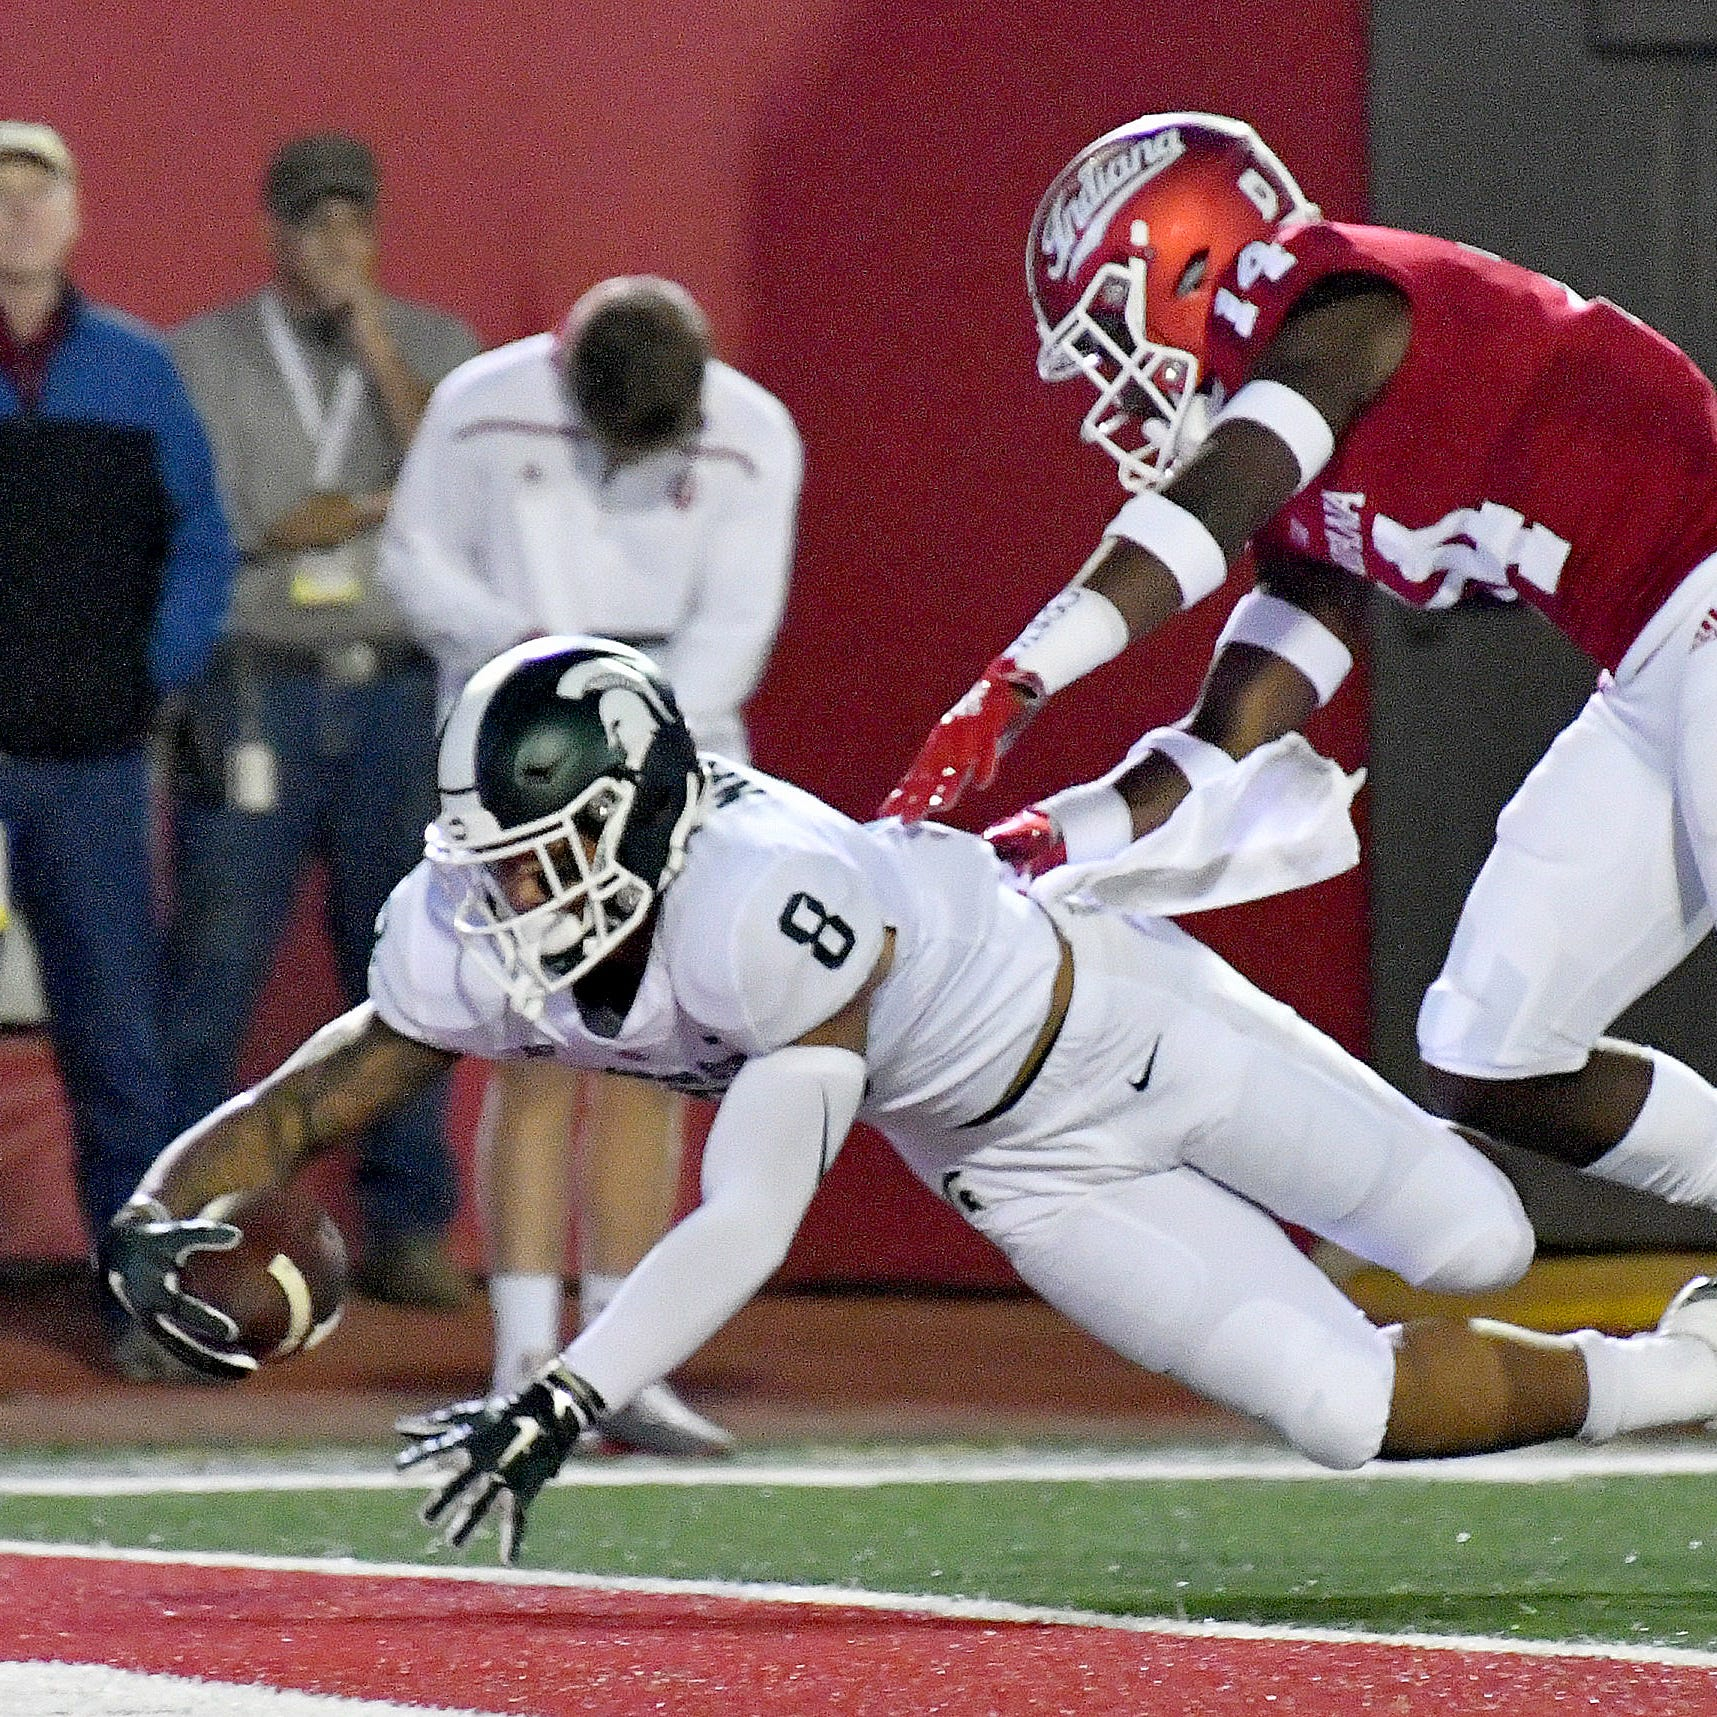 Spartans rise above miscues to win Big Ten opener over Hoosiers